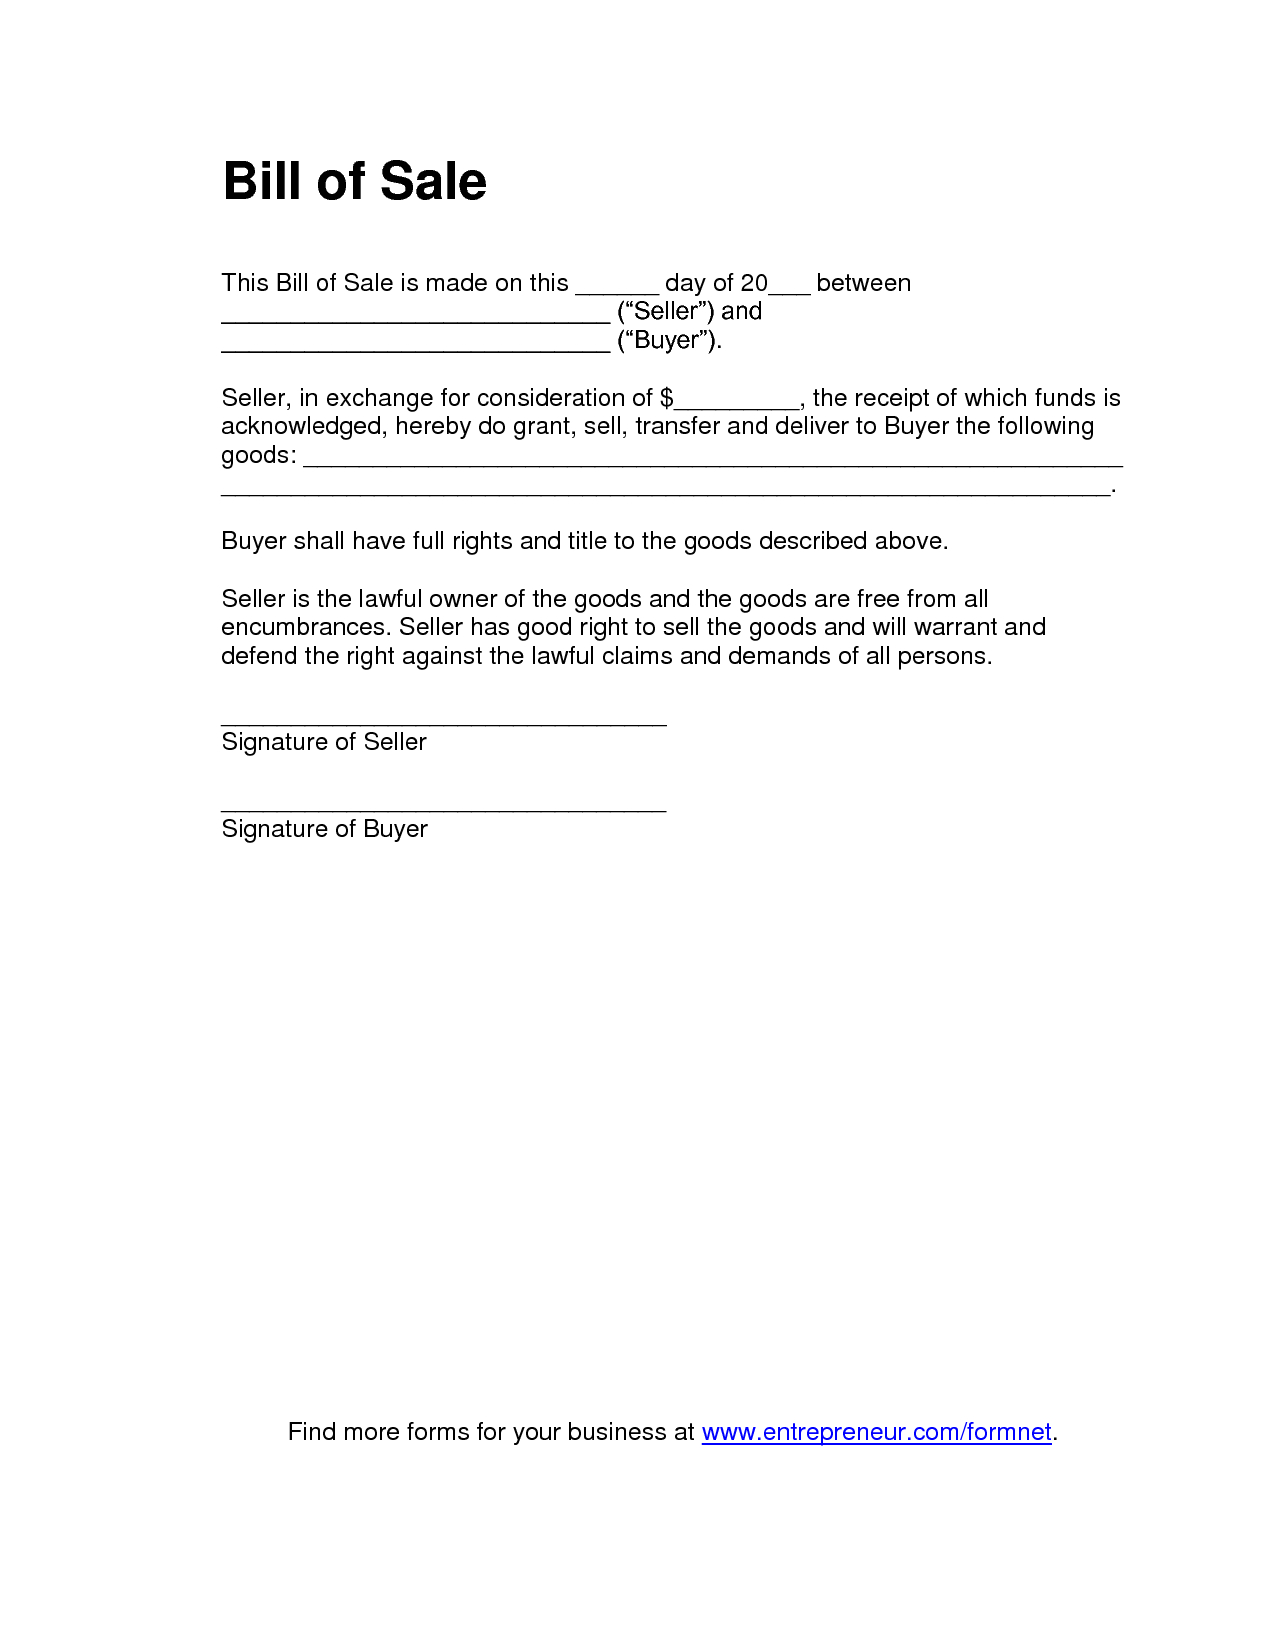 Printable Sample Bill Of Sale Templates Form | Legal Document Online - Find Free Printable Forms Online